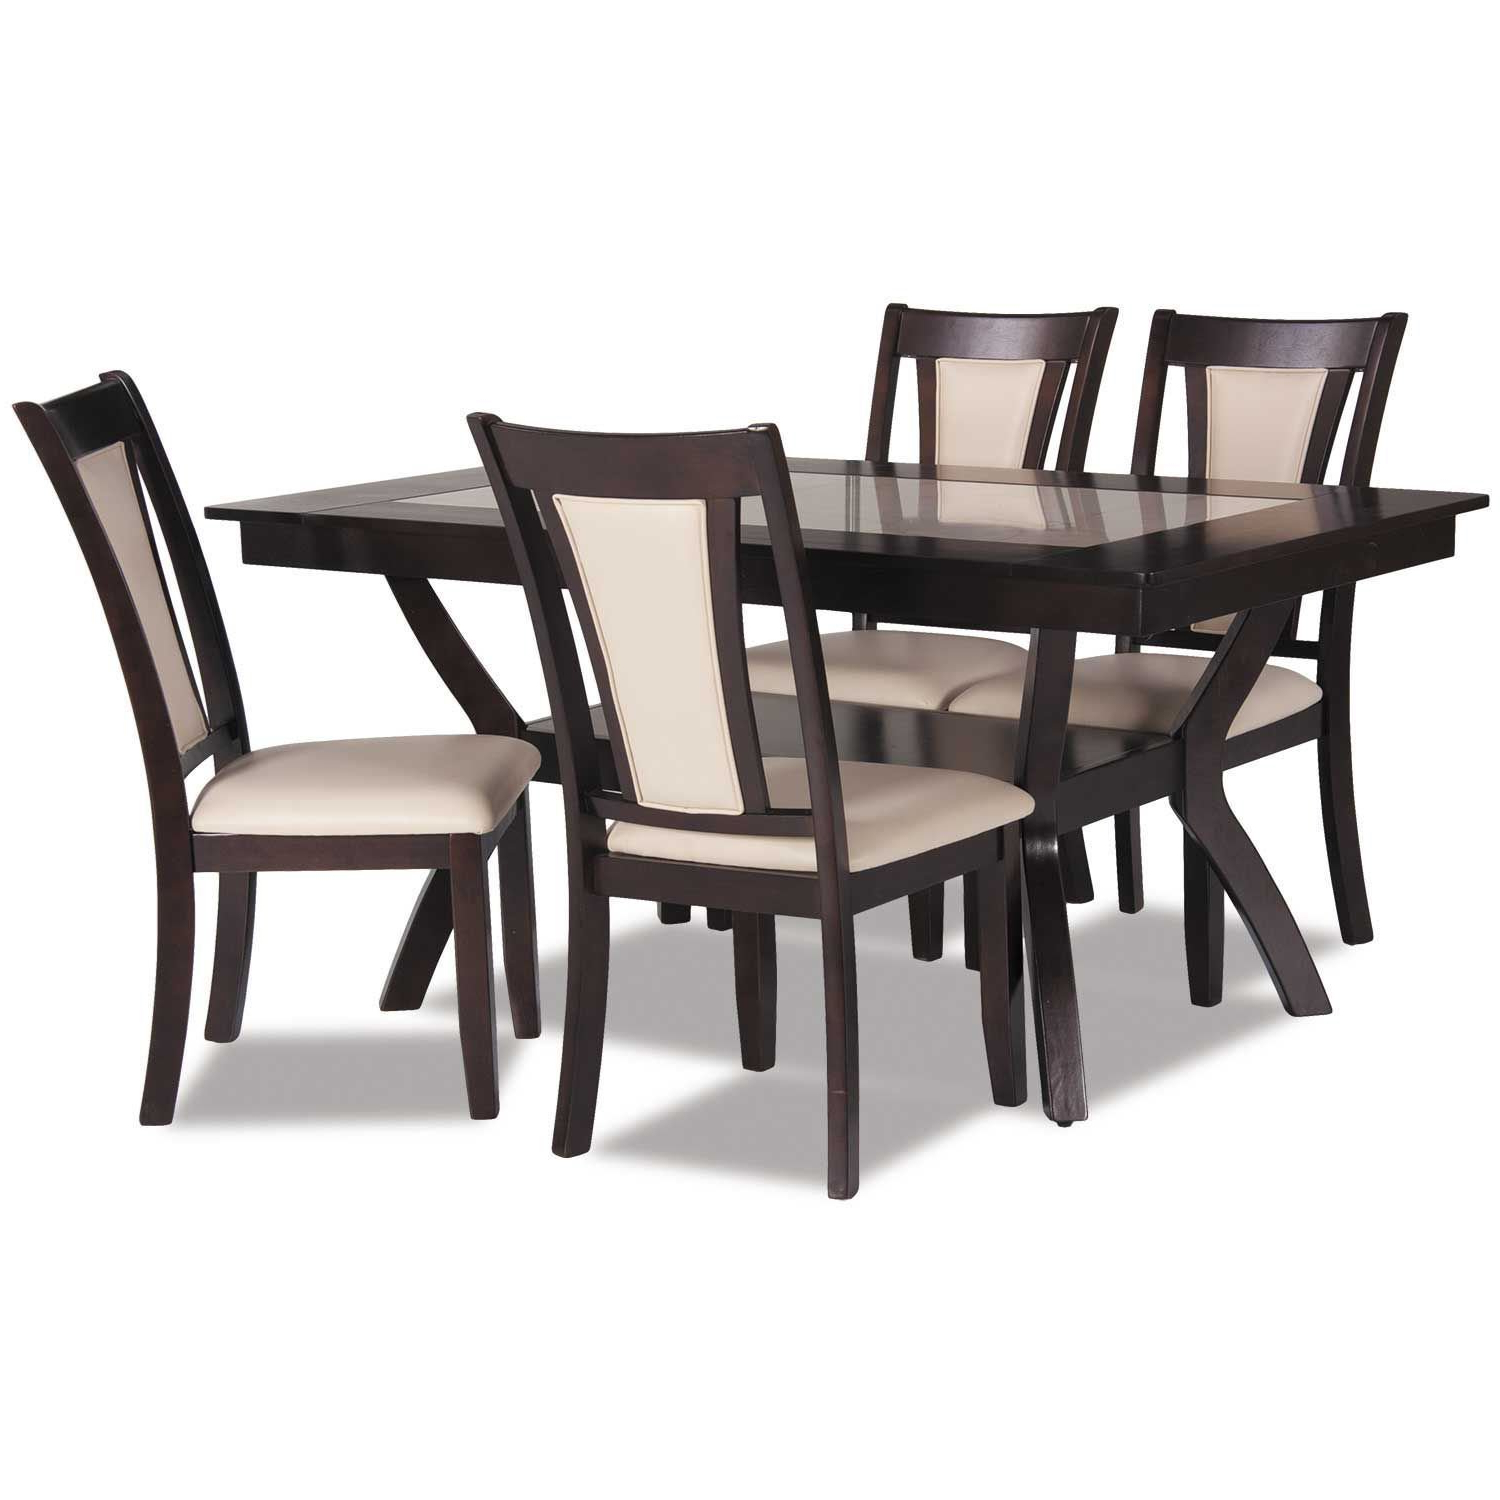 Preferred 5 Piece Dining Sets With Regard To Reno 5 Piece Dining Set (View 15 of 20)